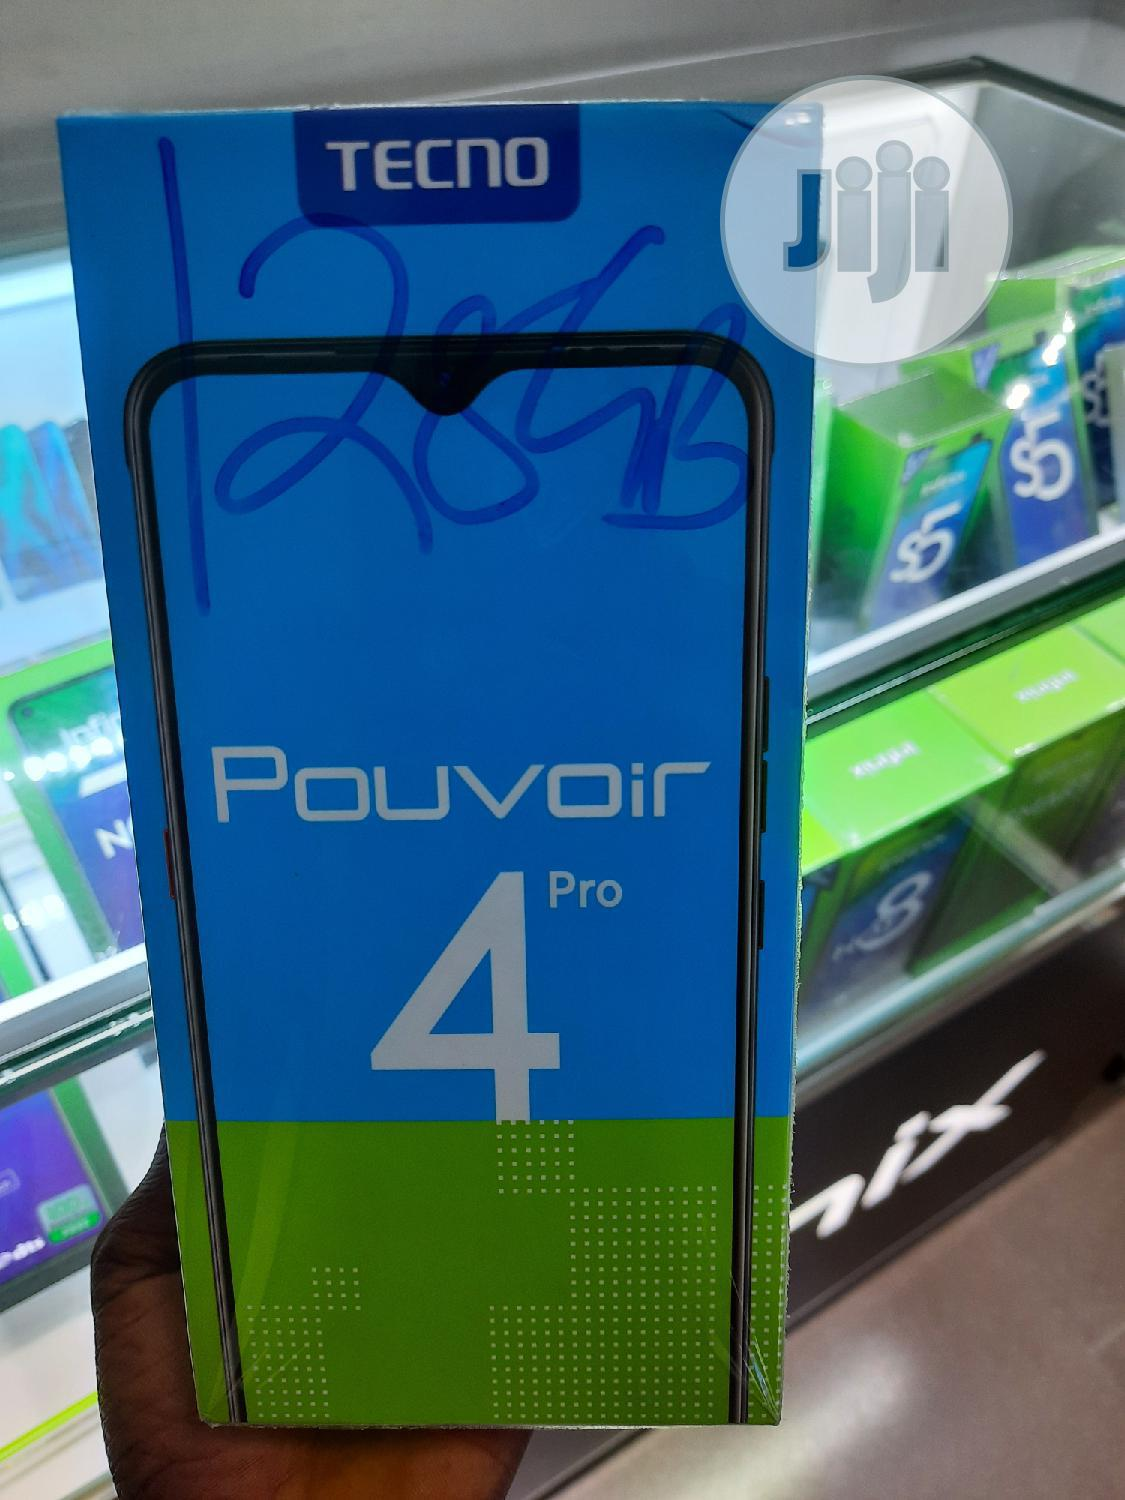 New Tecno Pouvoir 4 Pro 128 GB | Mobile Phones for sale in Port-Harcourt, Rivers State, Nigeria